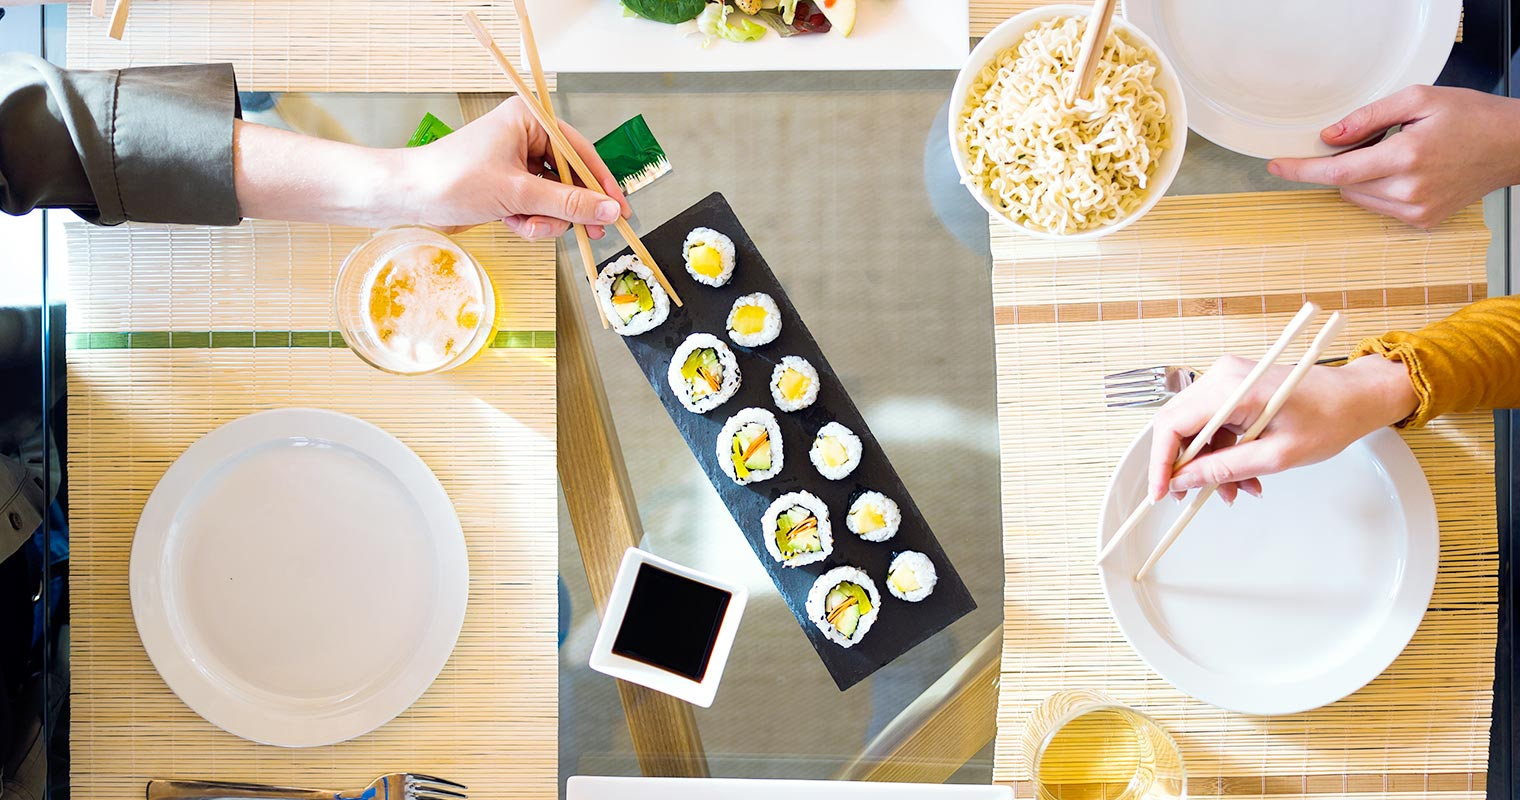 When you dine in Japan, it is rest assured that food safety is the best